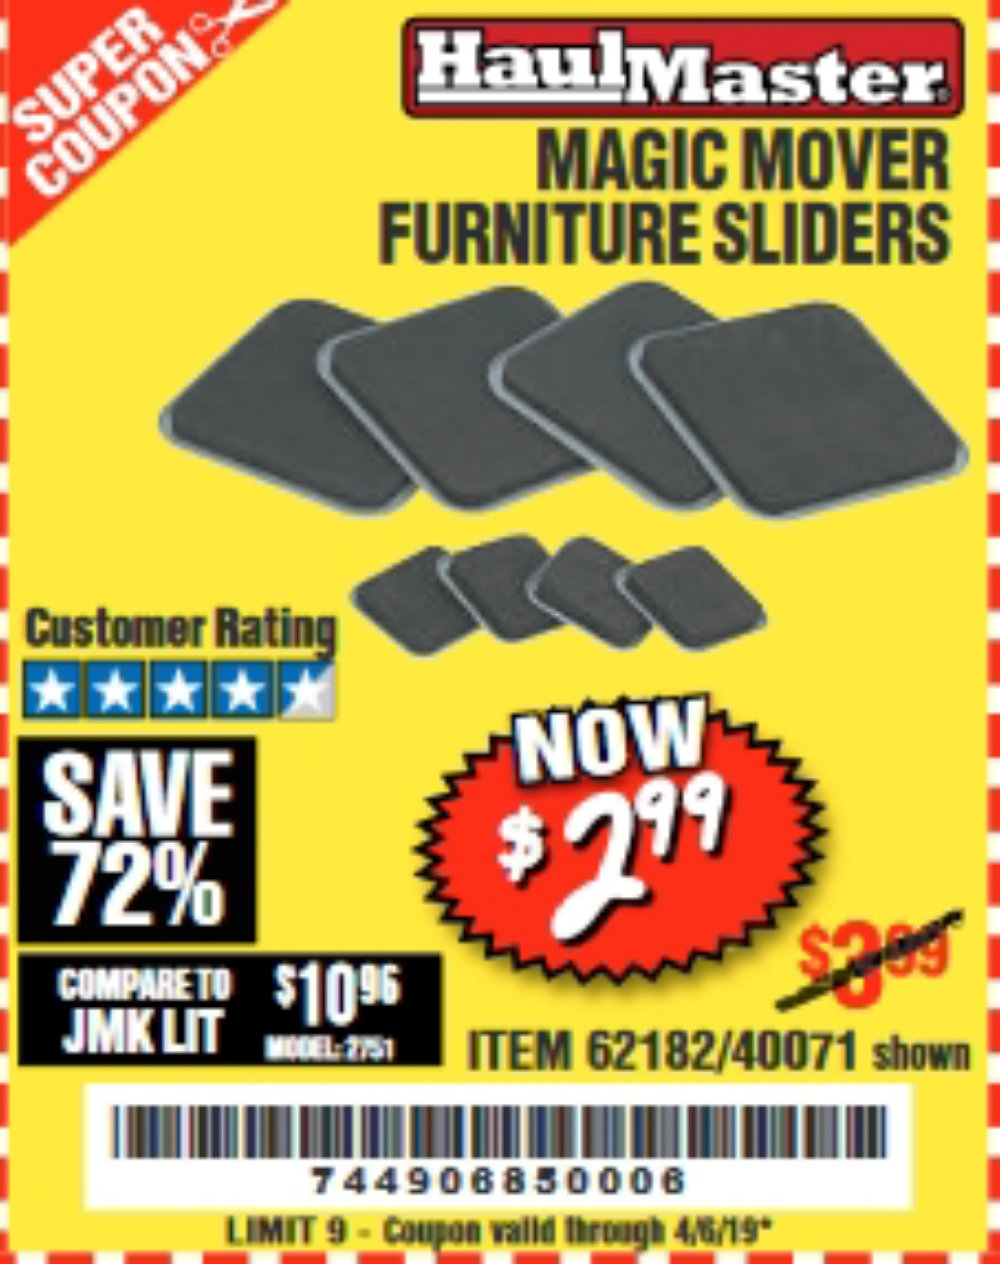 Harbor Freight Coupon, HF Coupons - Magic Mover Furniture Sliders